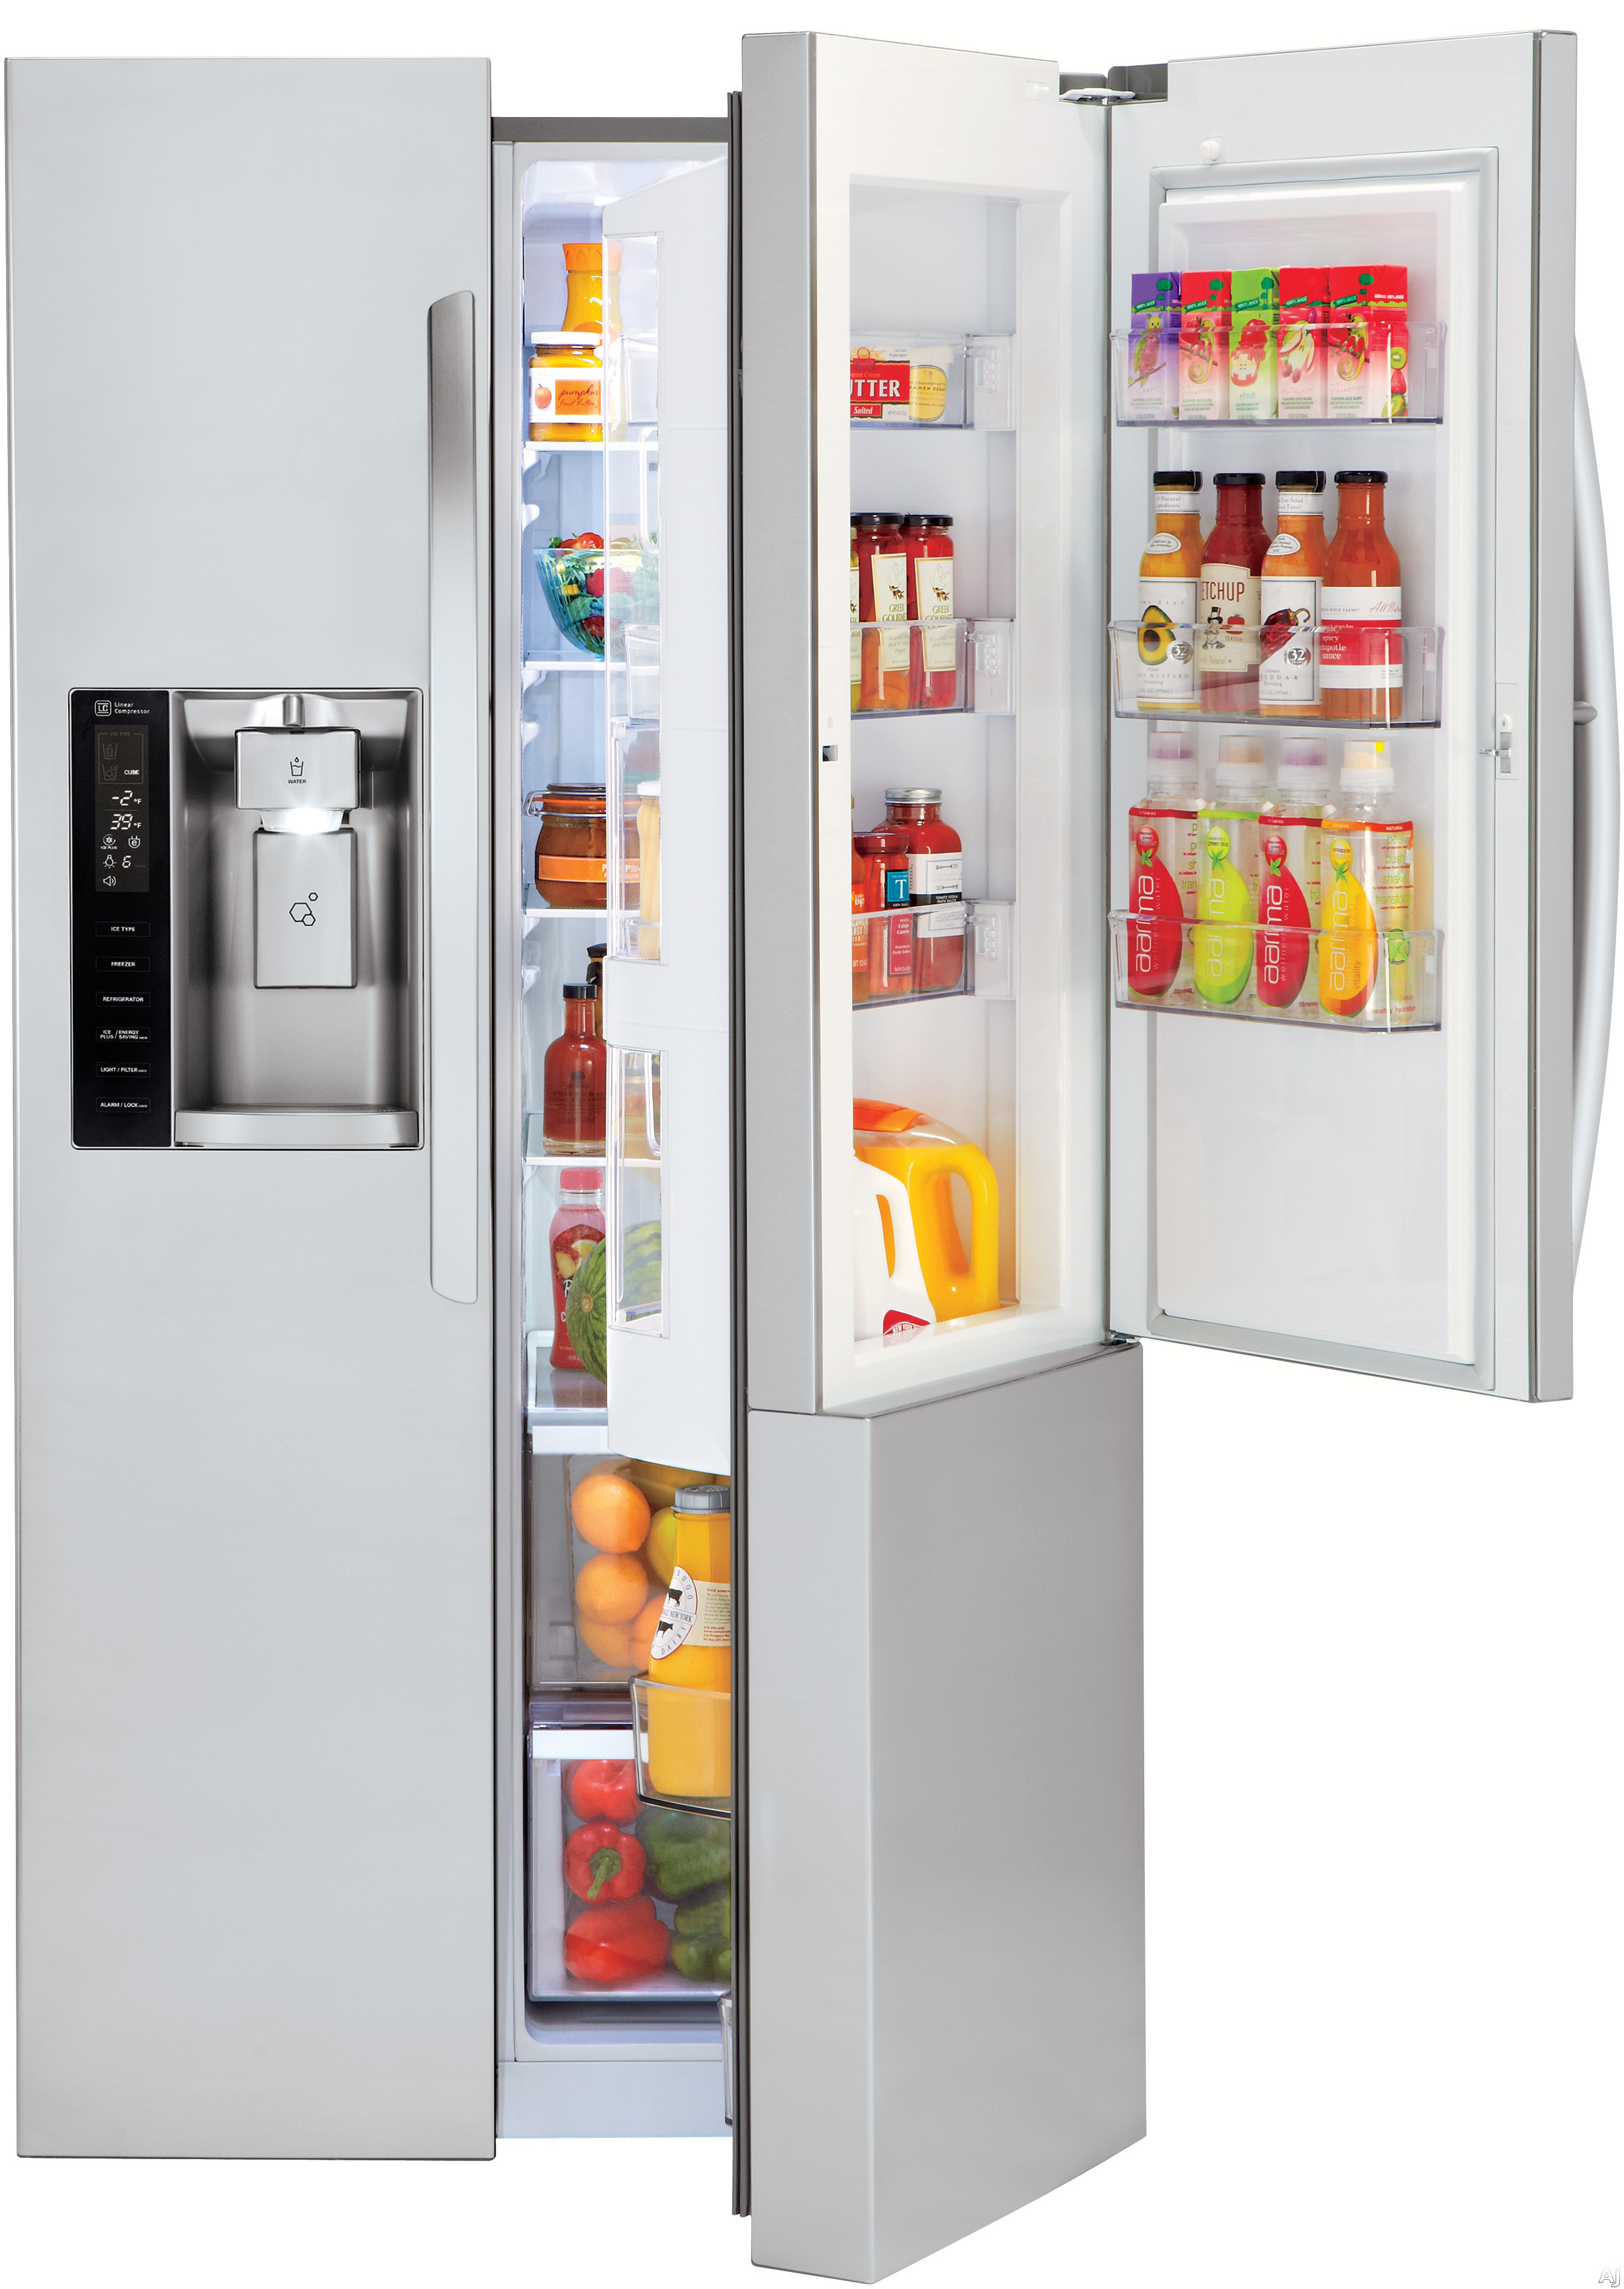 Lg Lsxs26366s 26 Cu Ft Side By Side Refrigerator With